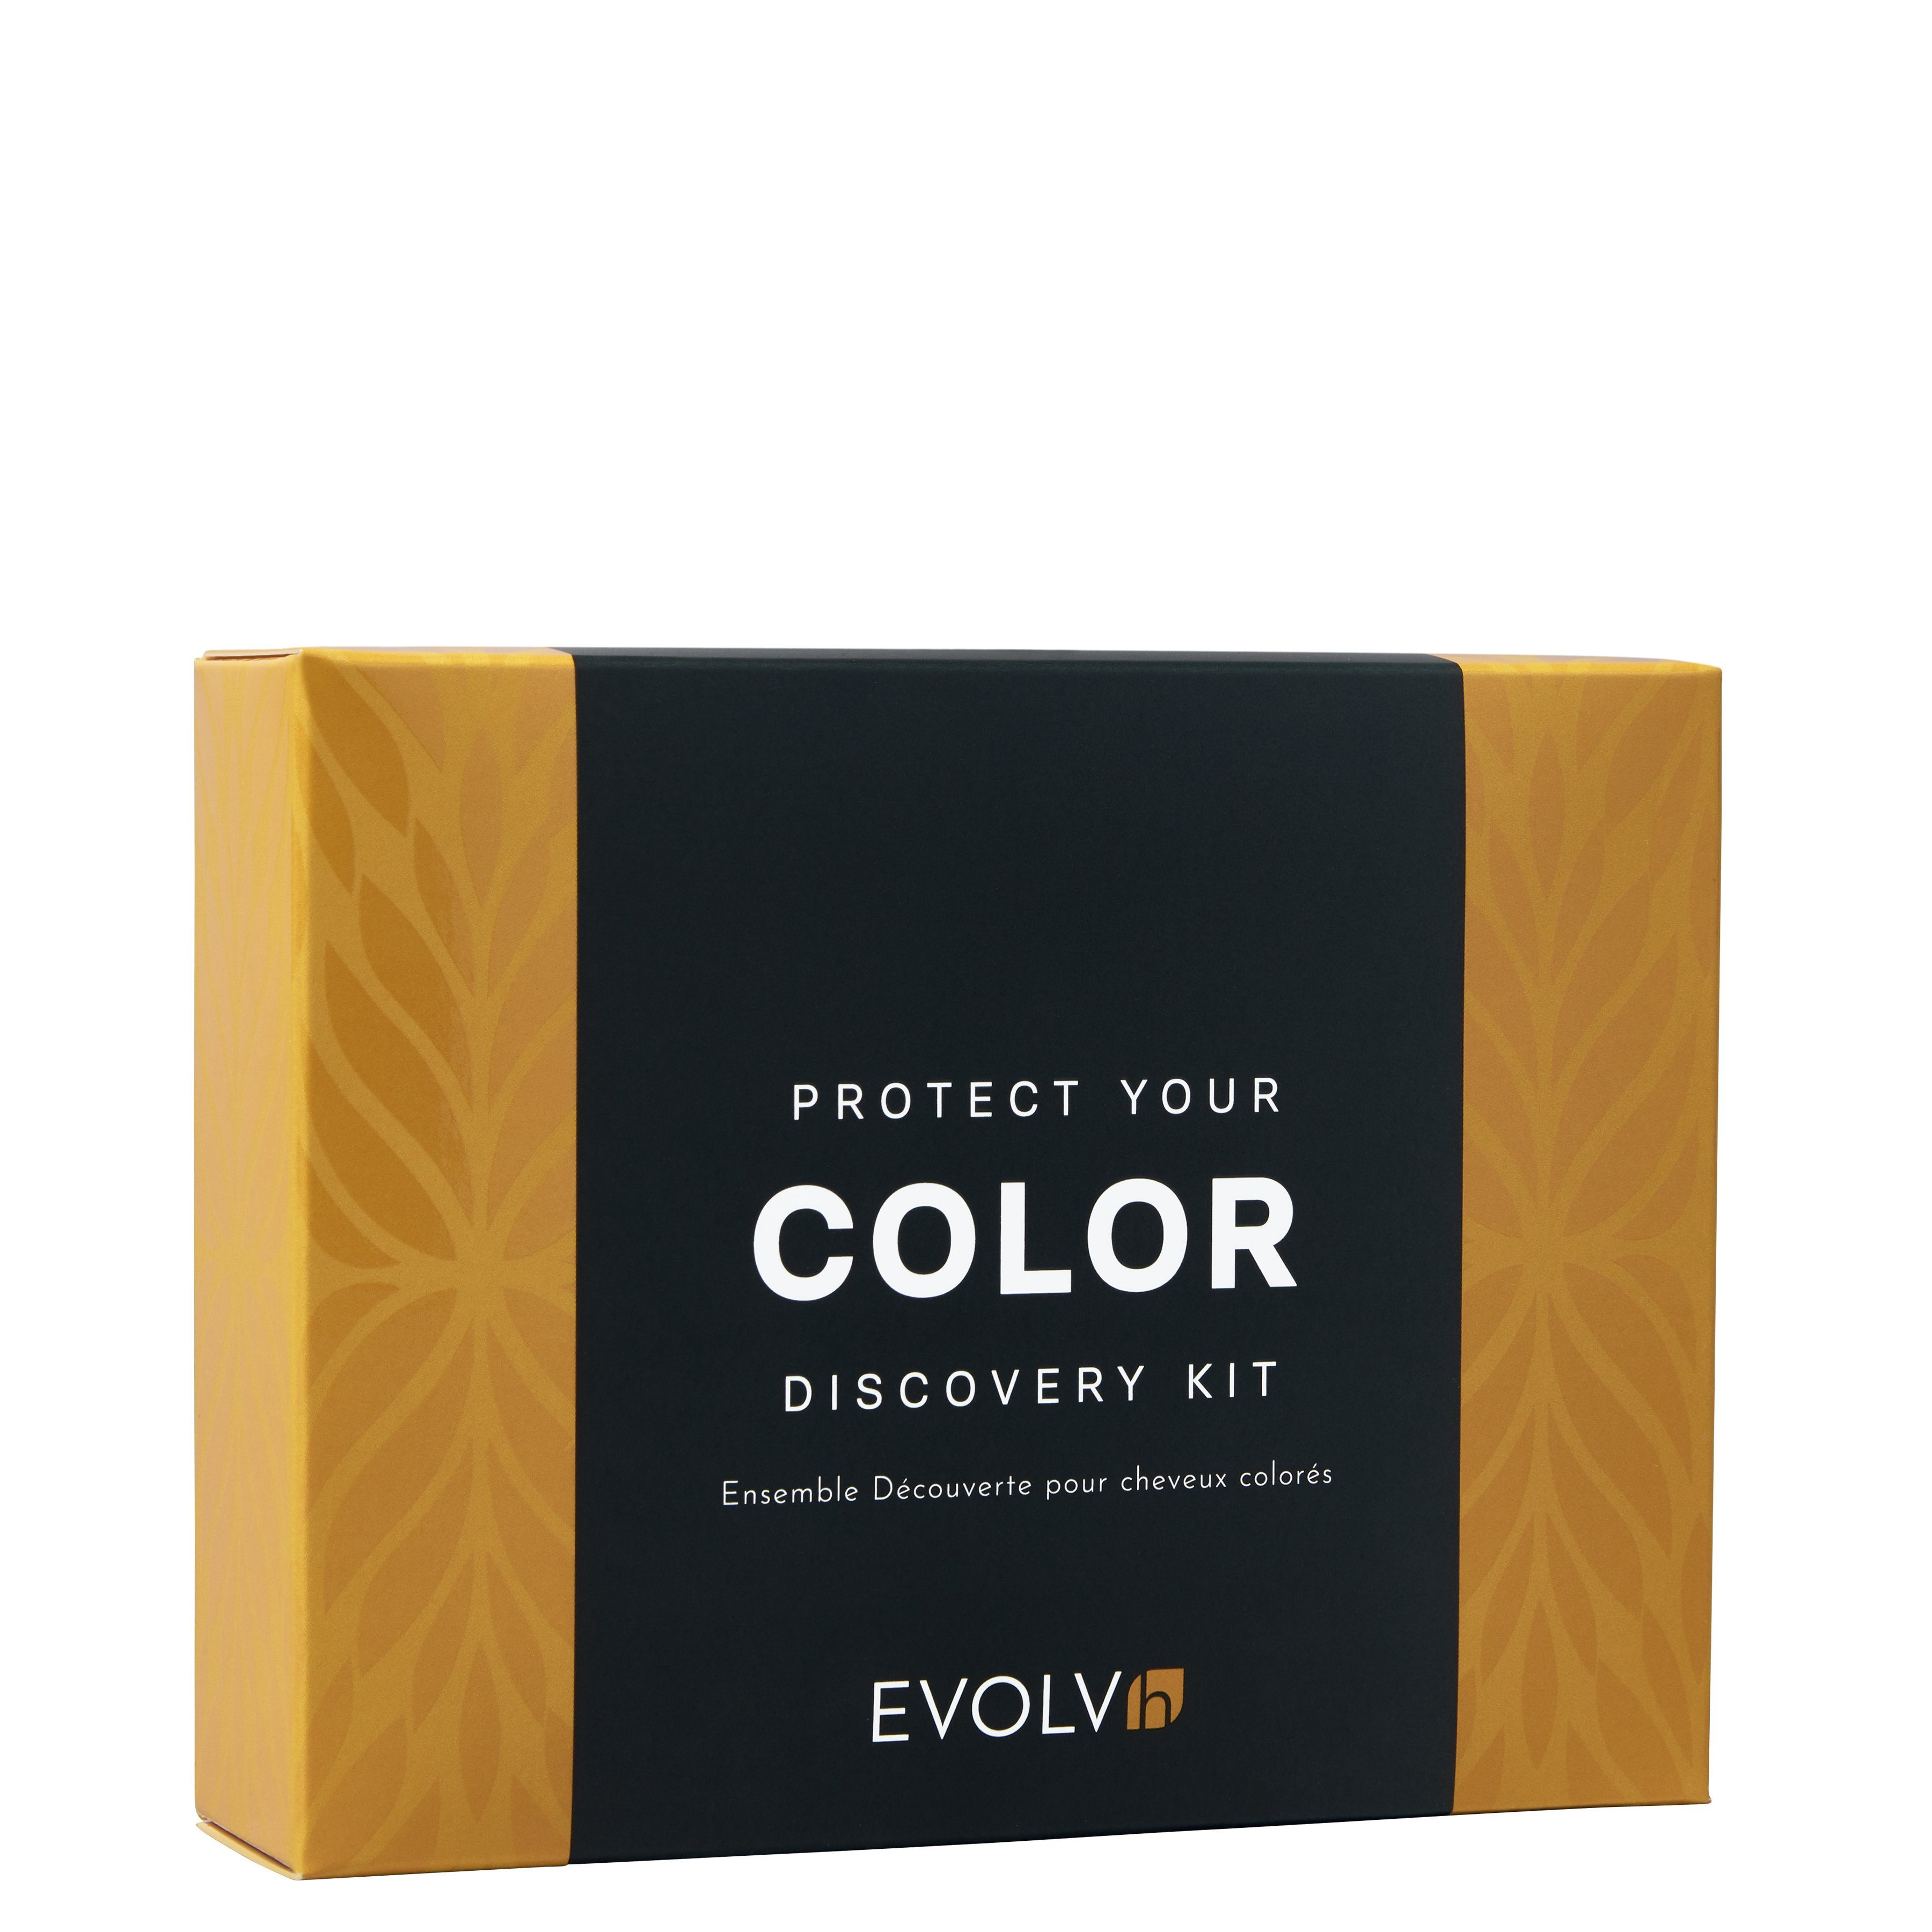 EVOLVh Discovery Kit - Color Protect